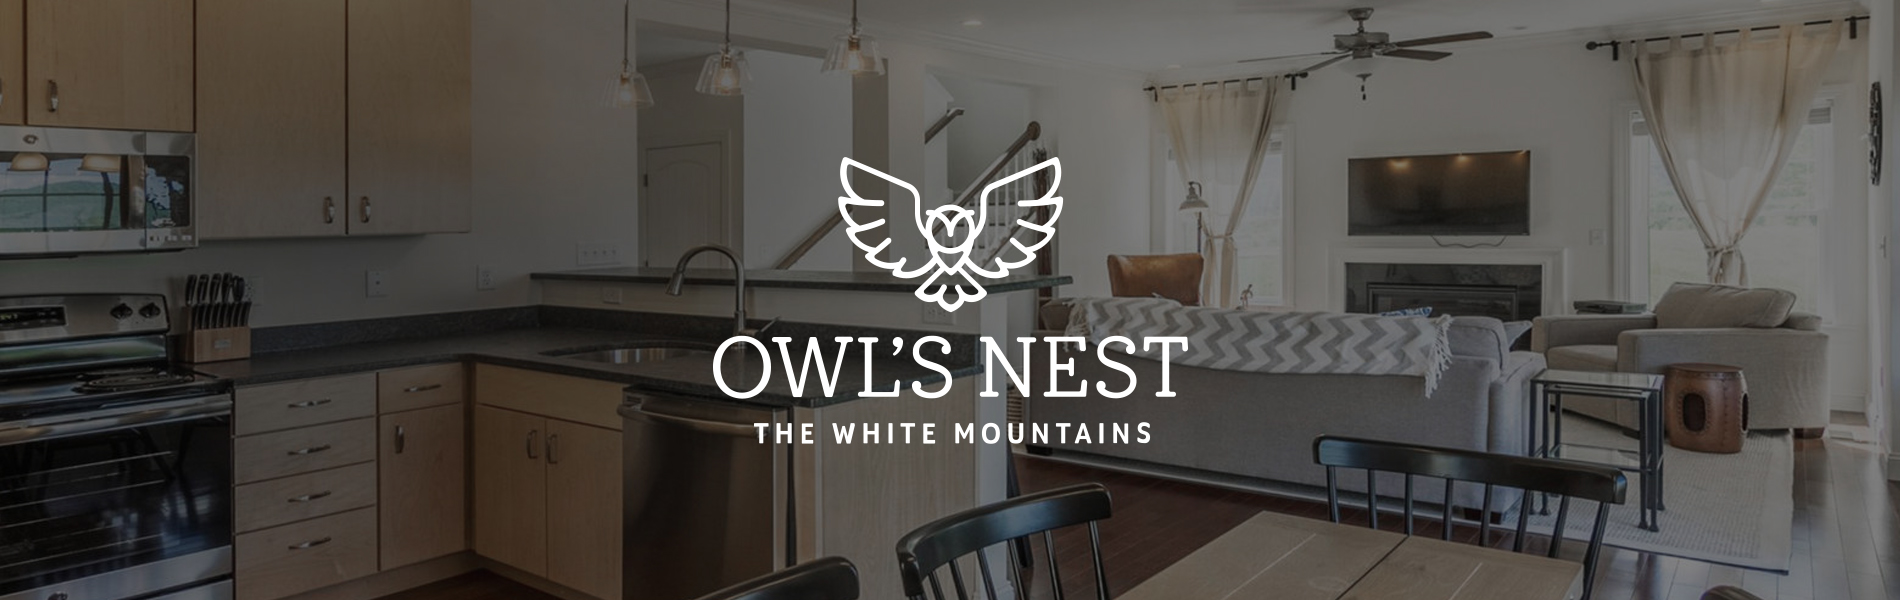 Enjoy the luxury of The Owl's Nest cottages located a short drive away from Waterville Valley Resort